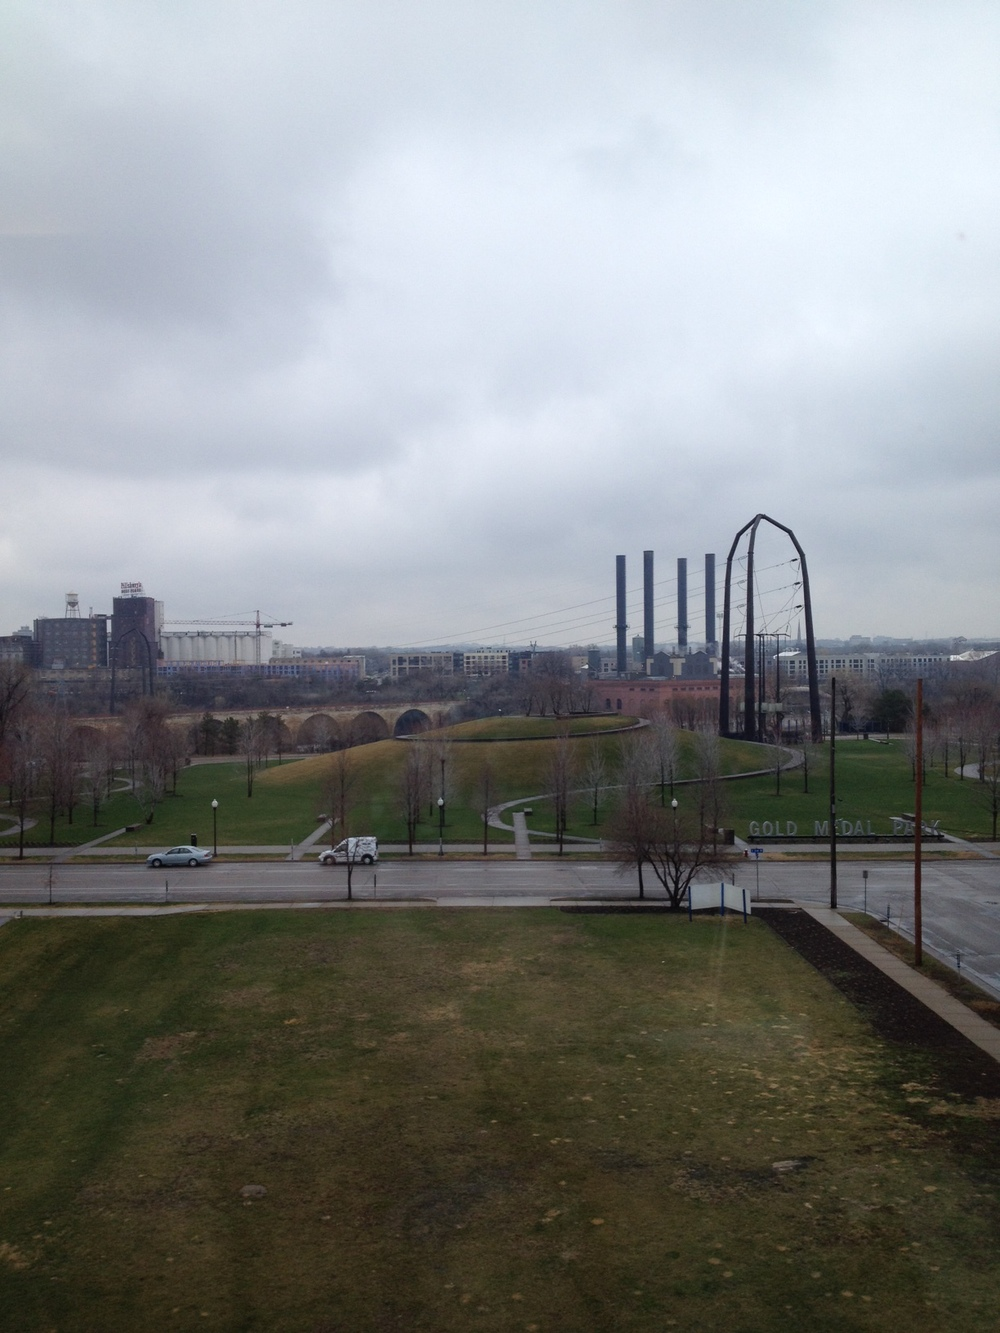 Room with a view: Looking toward the Mississippi River from my hotel room